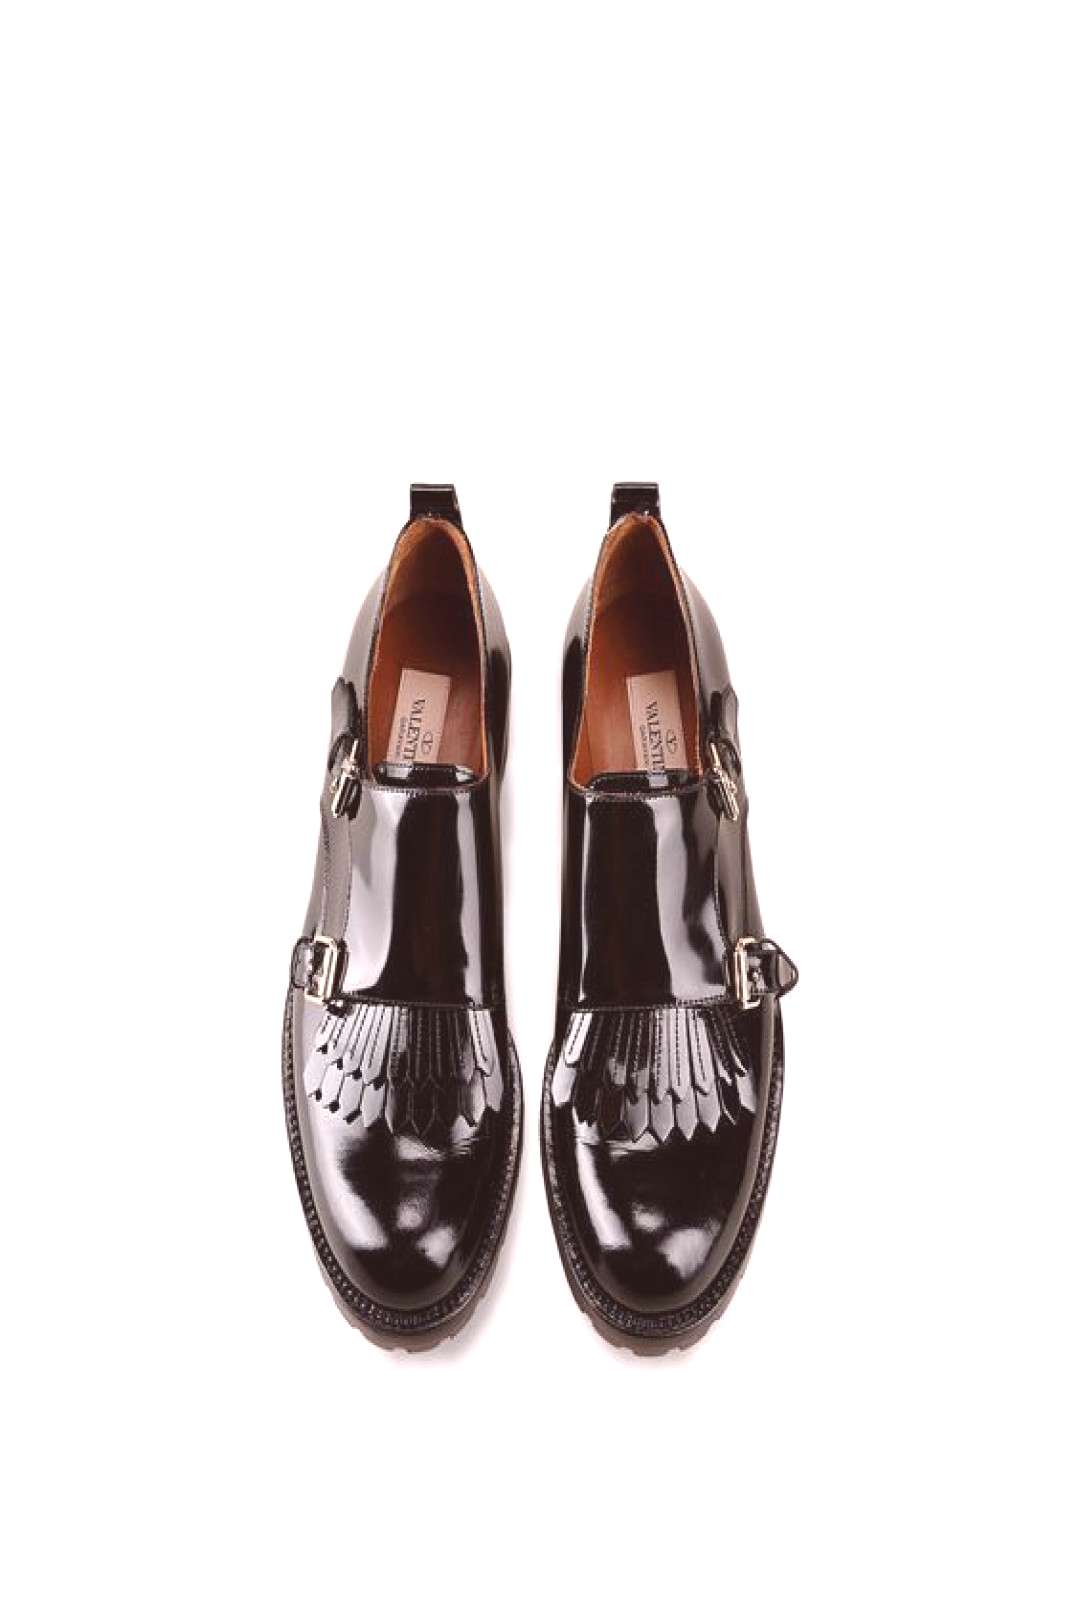 how to wear derbies? What to wear womens derbies with?